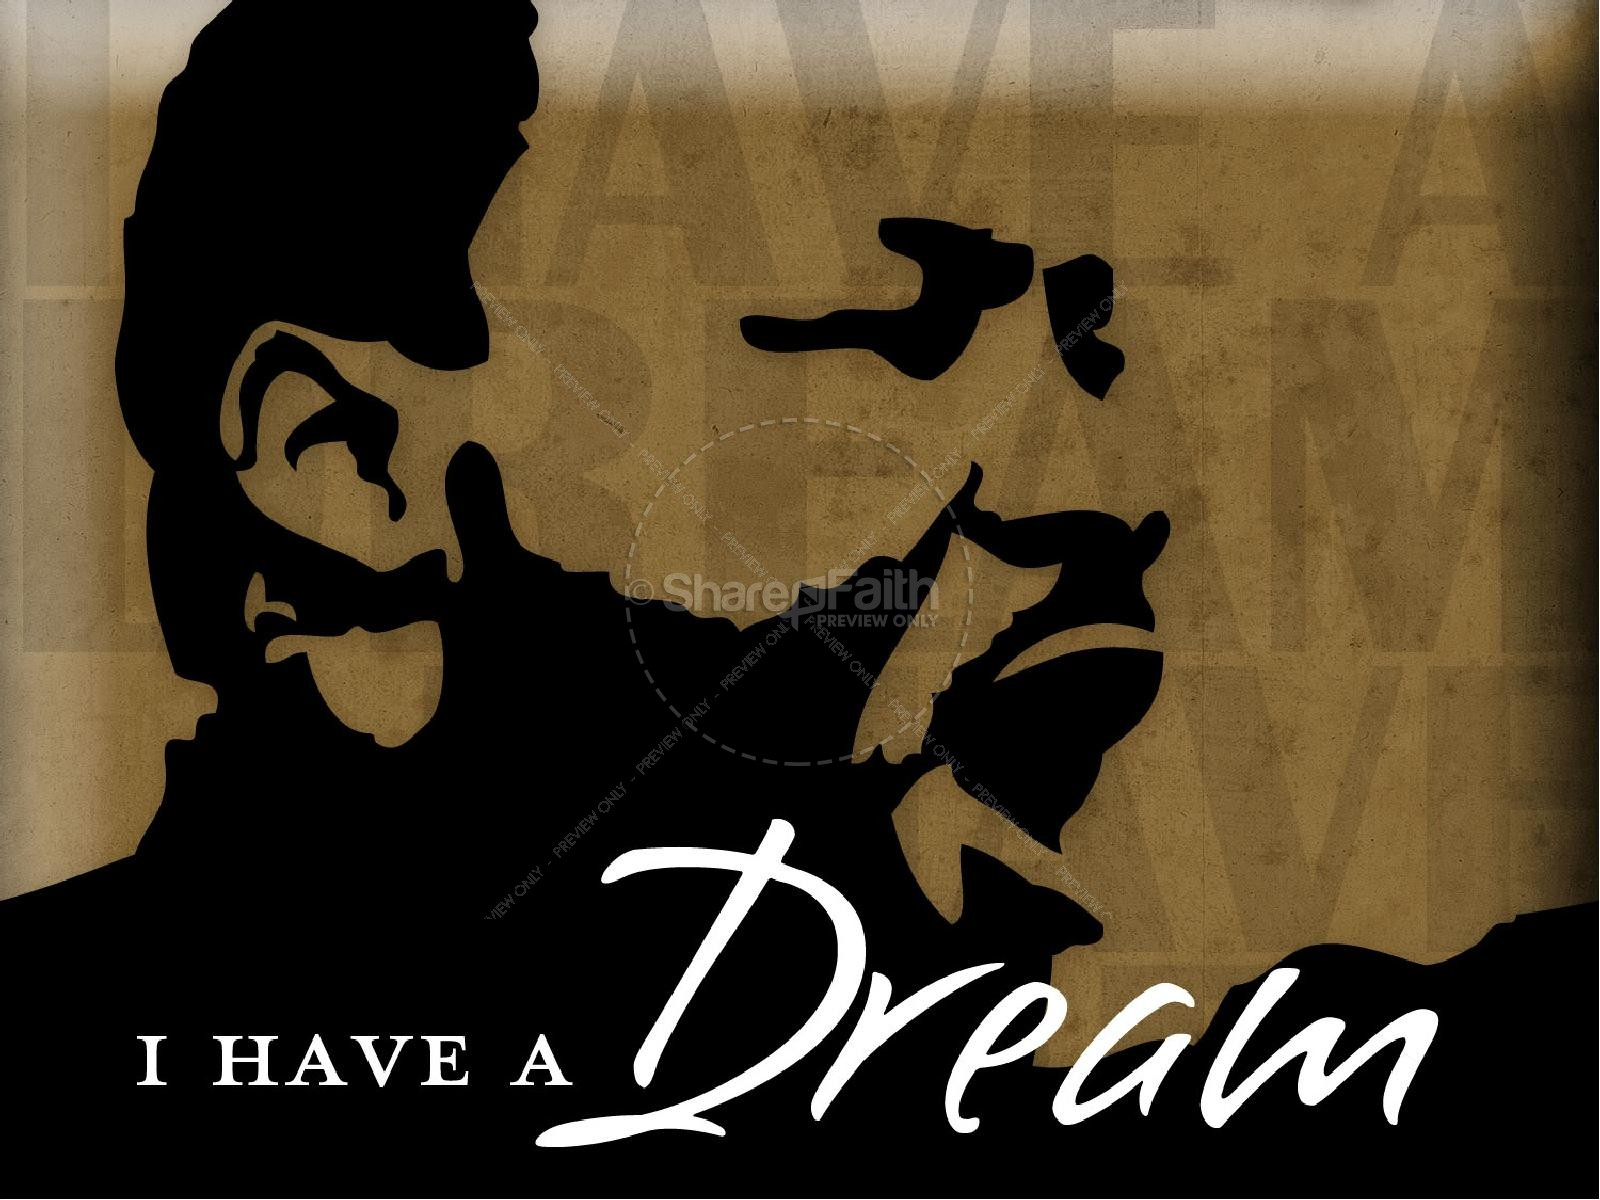 Martin Luther King Dream Slideshow